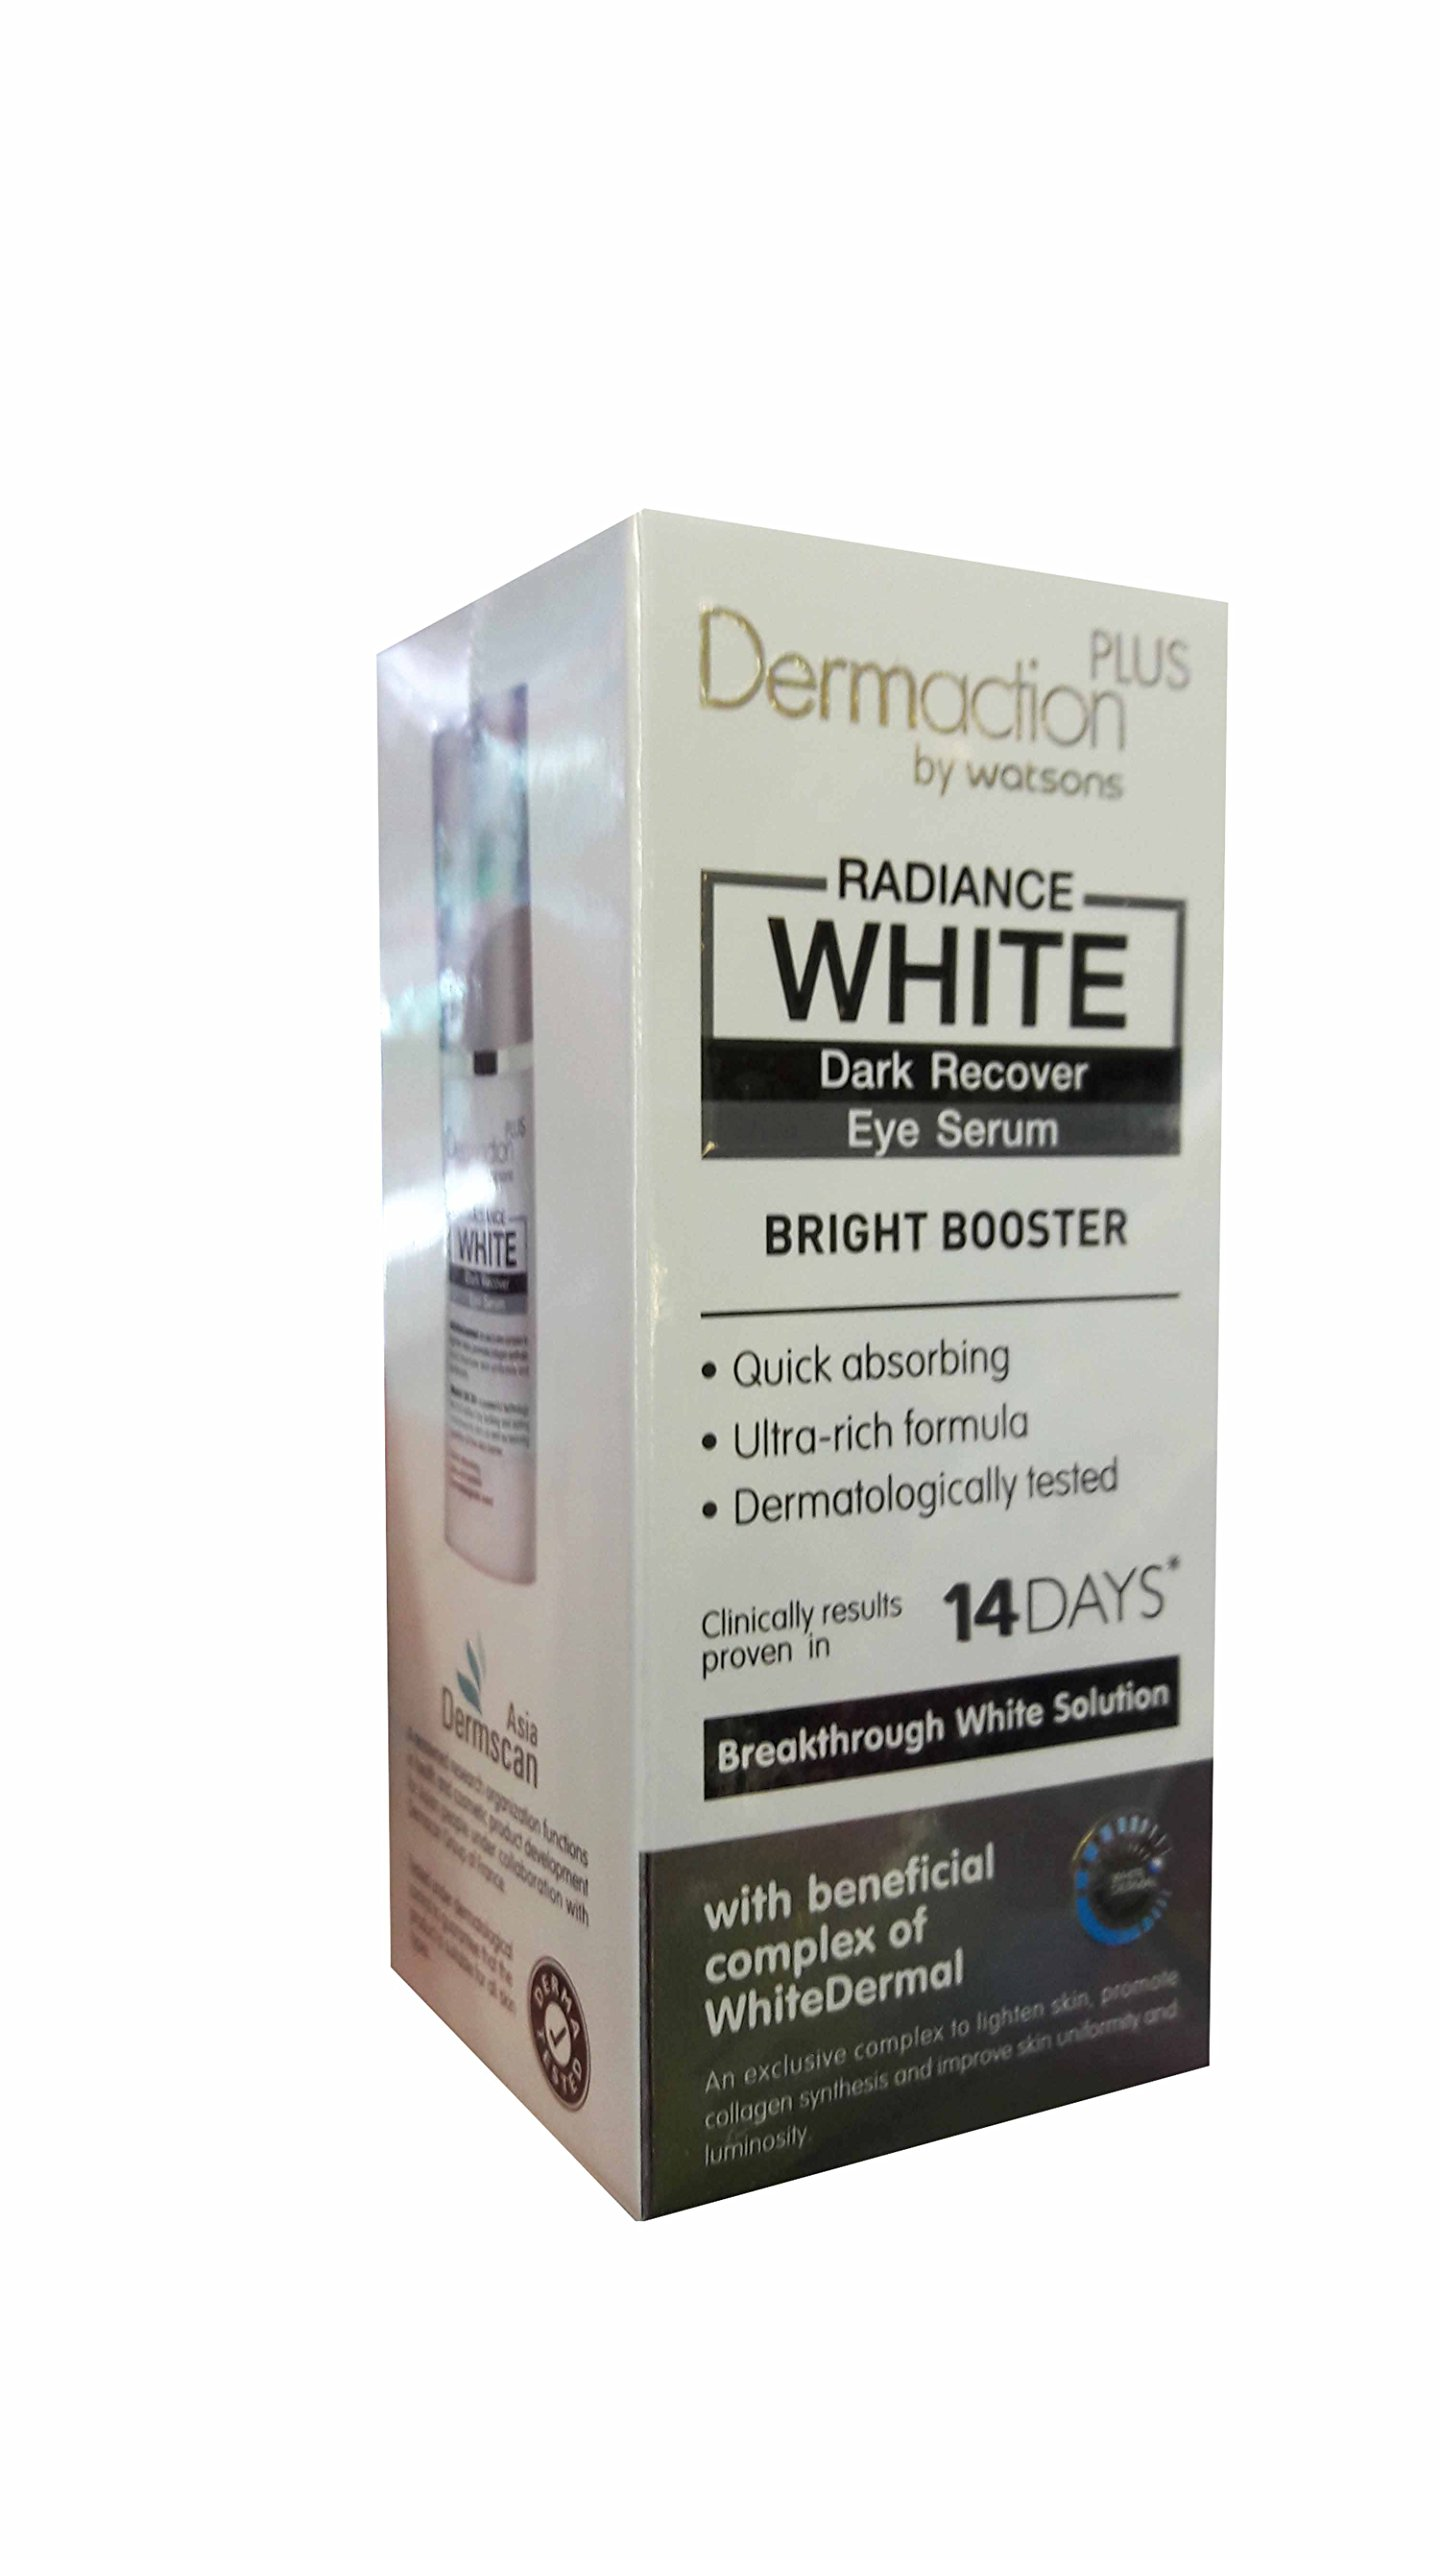 2 Packs of Dermaction Plus by Watsons Radiance White Dark Recover Eye Serum. Bright Booster, Quick absorbing, Ultra-rich formula, Dermatologically tested. (20 ml/ pack)..